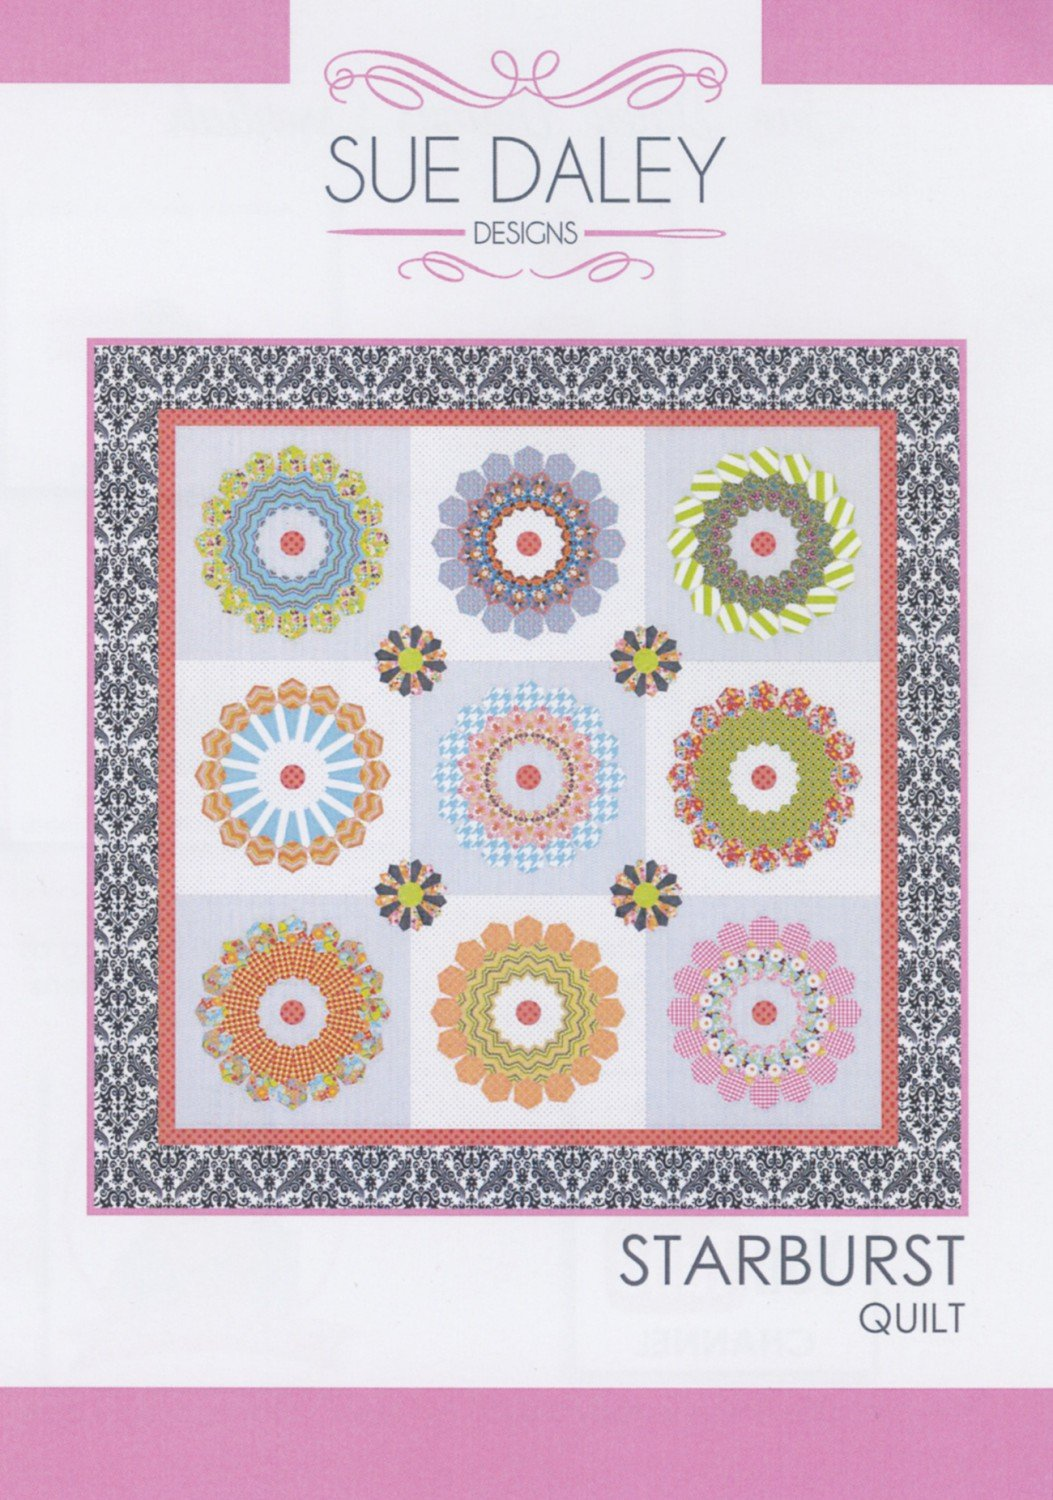 Sue Daley Starburst Quilt Pattern, Templates And Paper Pieces